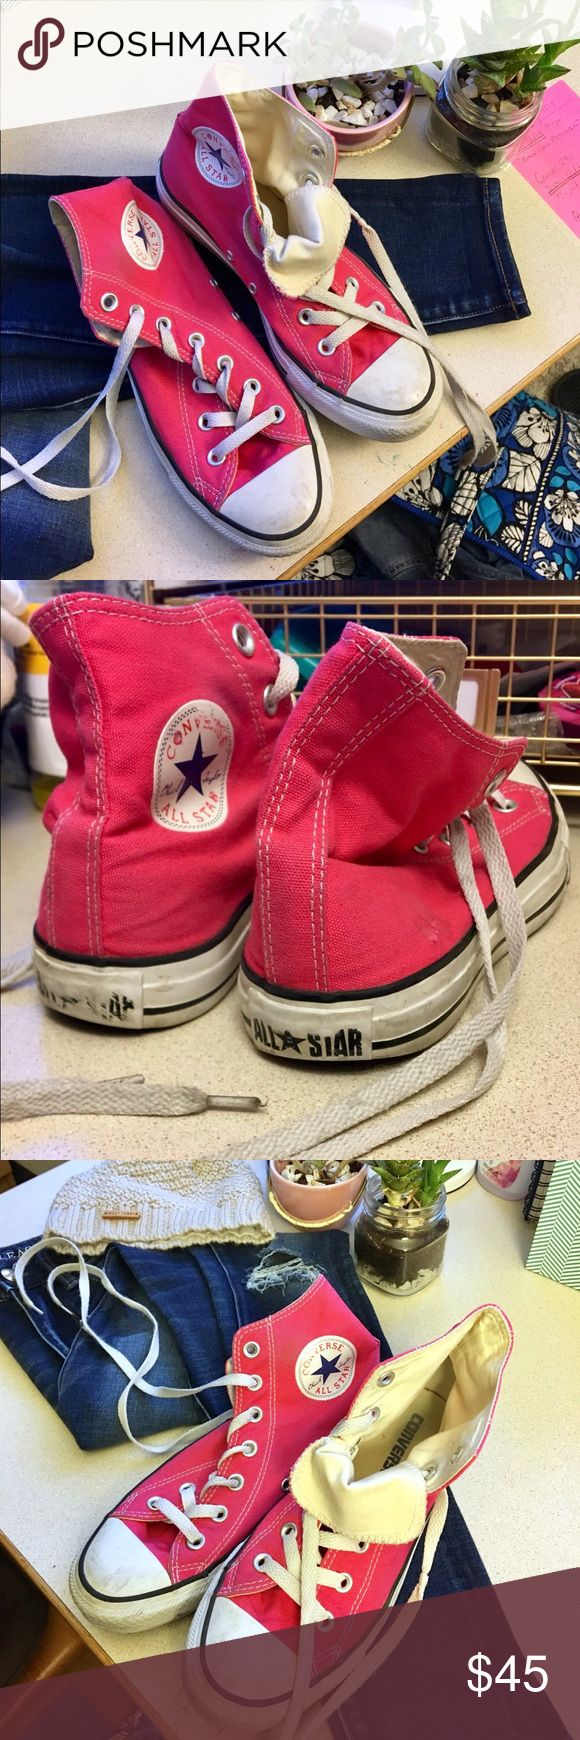 Pink Converse⚡️ Converse high tops, classic Chuck Taylors with statement bold color pop 🔥 Converse Shoes Sneakers